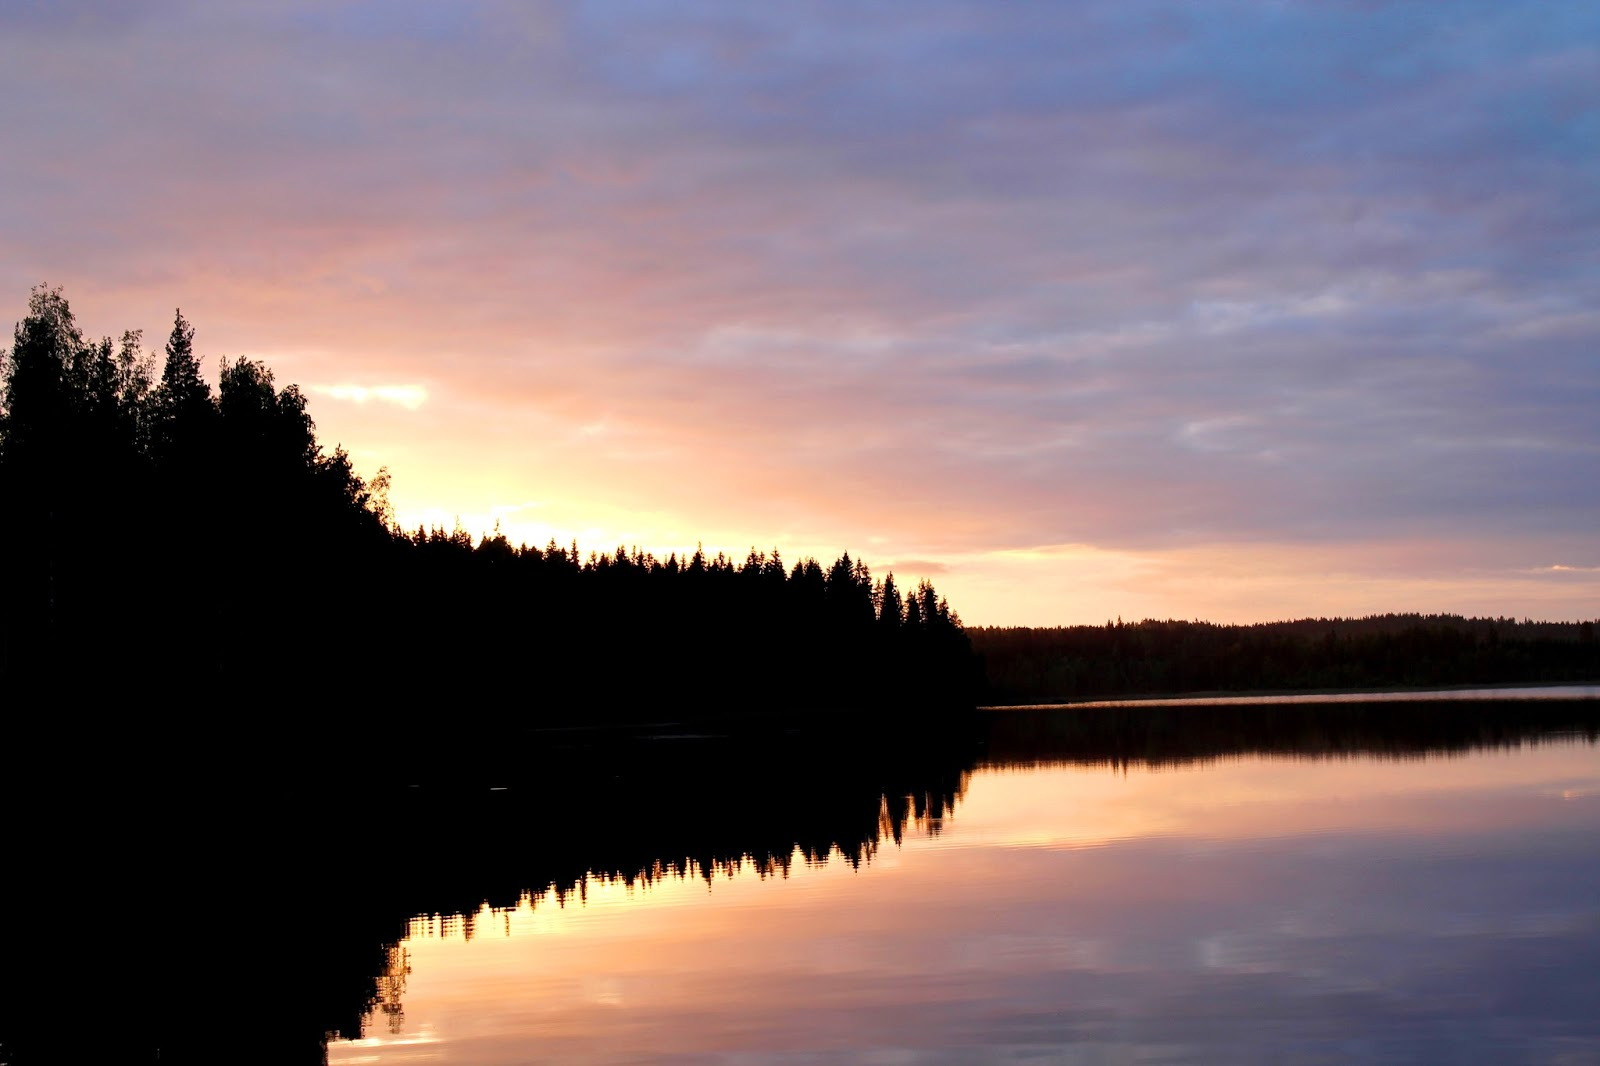 Sunset at lake Saimaa #visitfinland | Alinan kotona blog